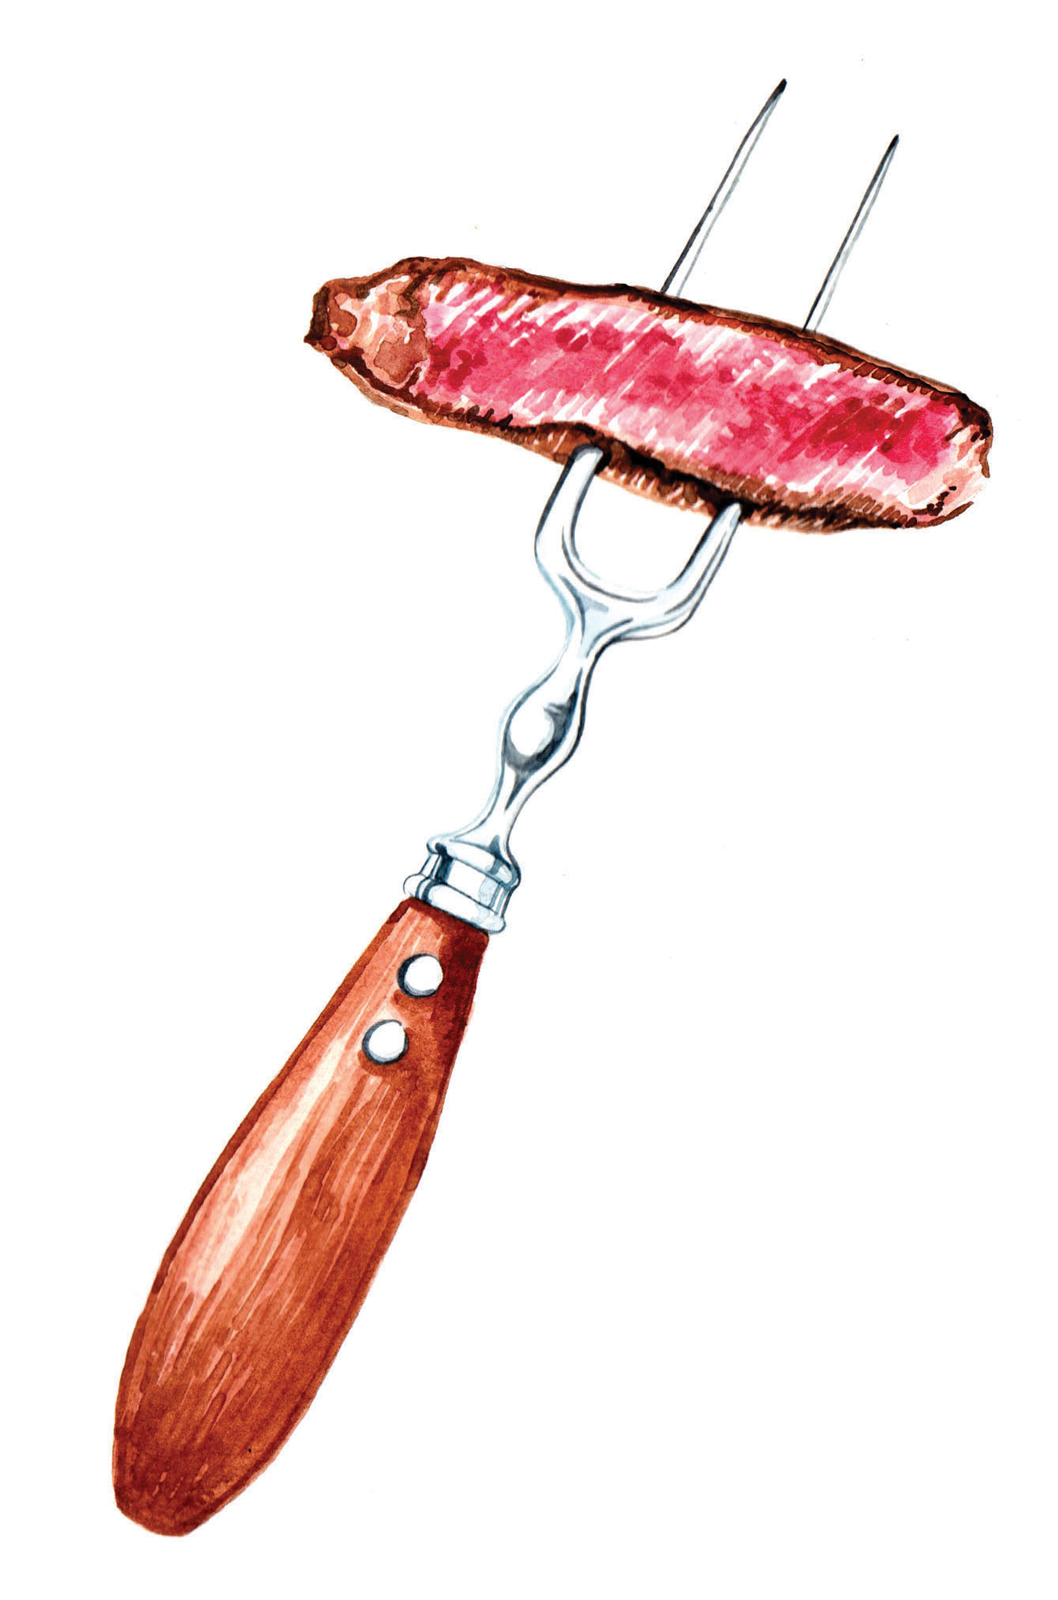 watercolour food illustrations steak on fork